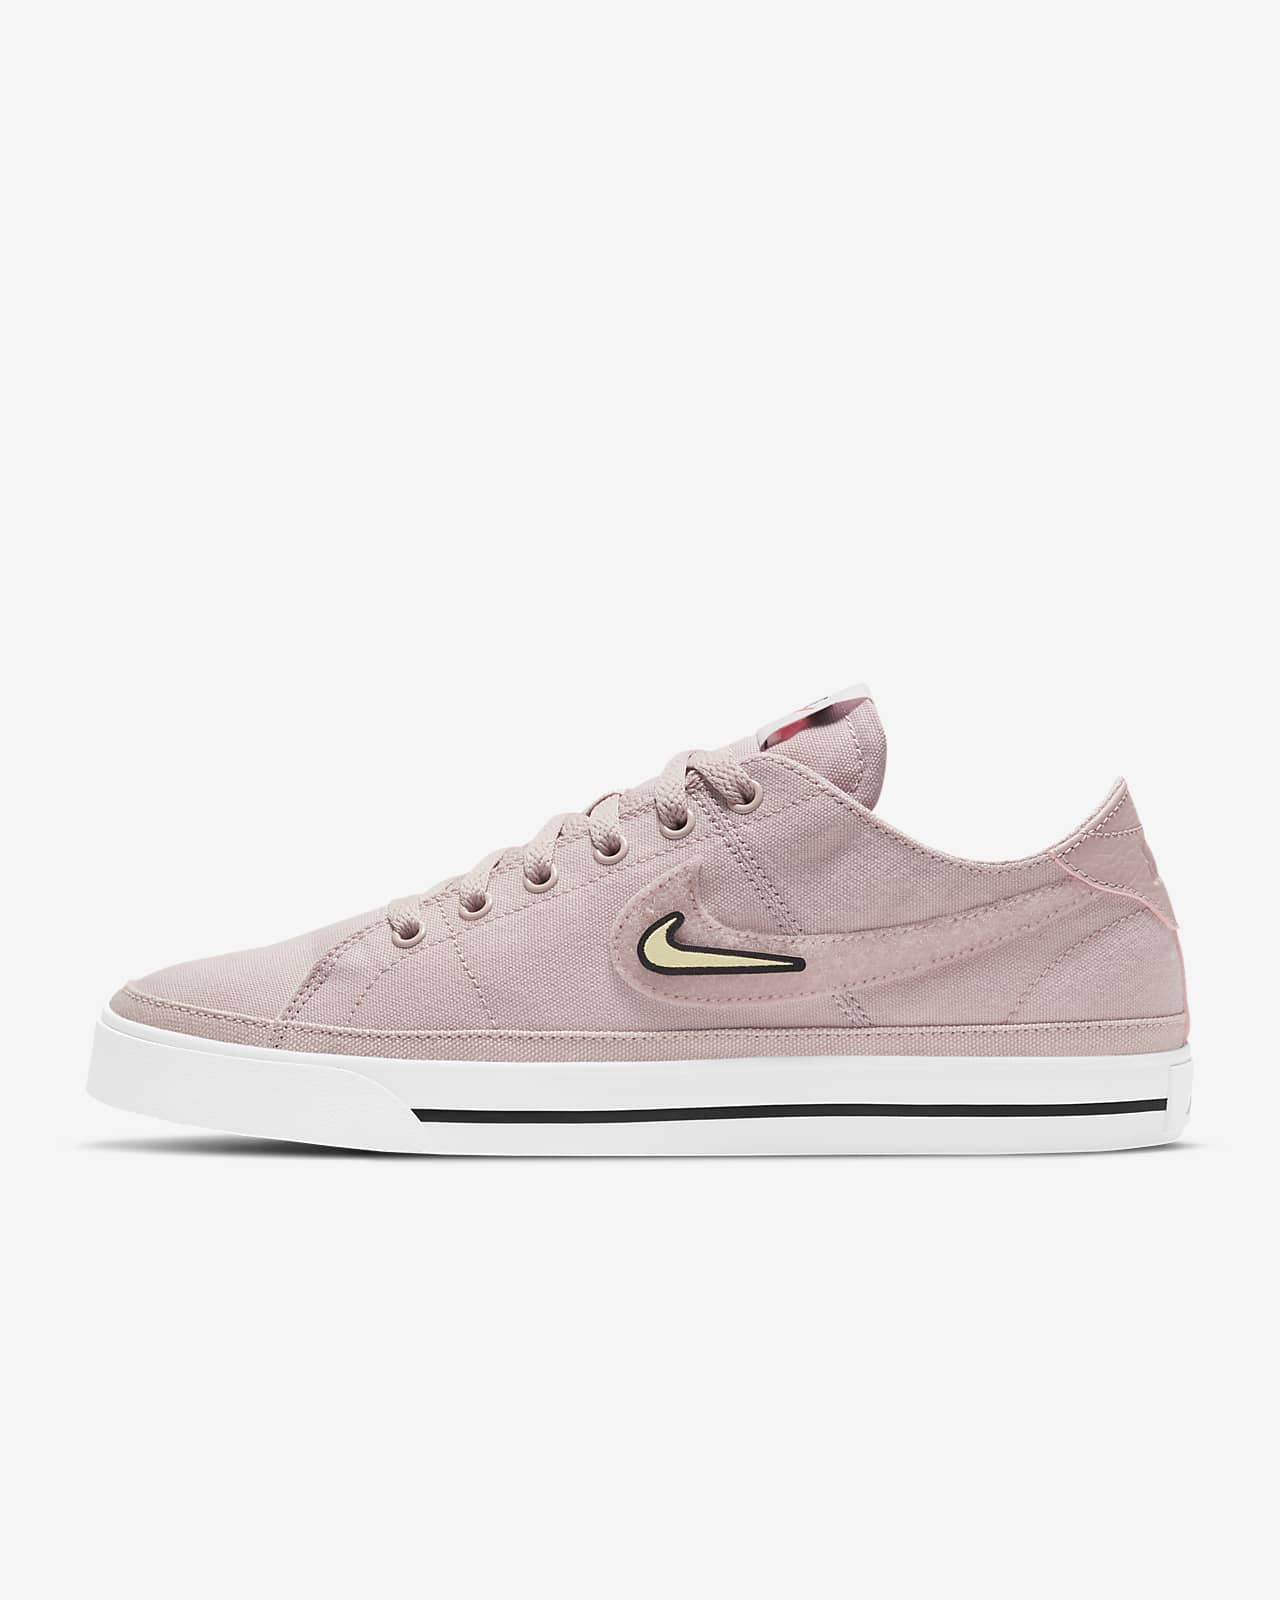 NikeCourt Legacy Valentine's Day Women's Shoe